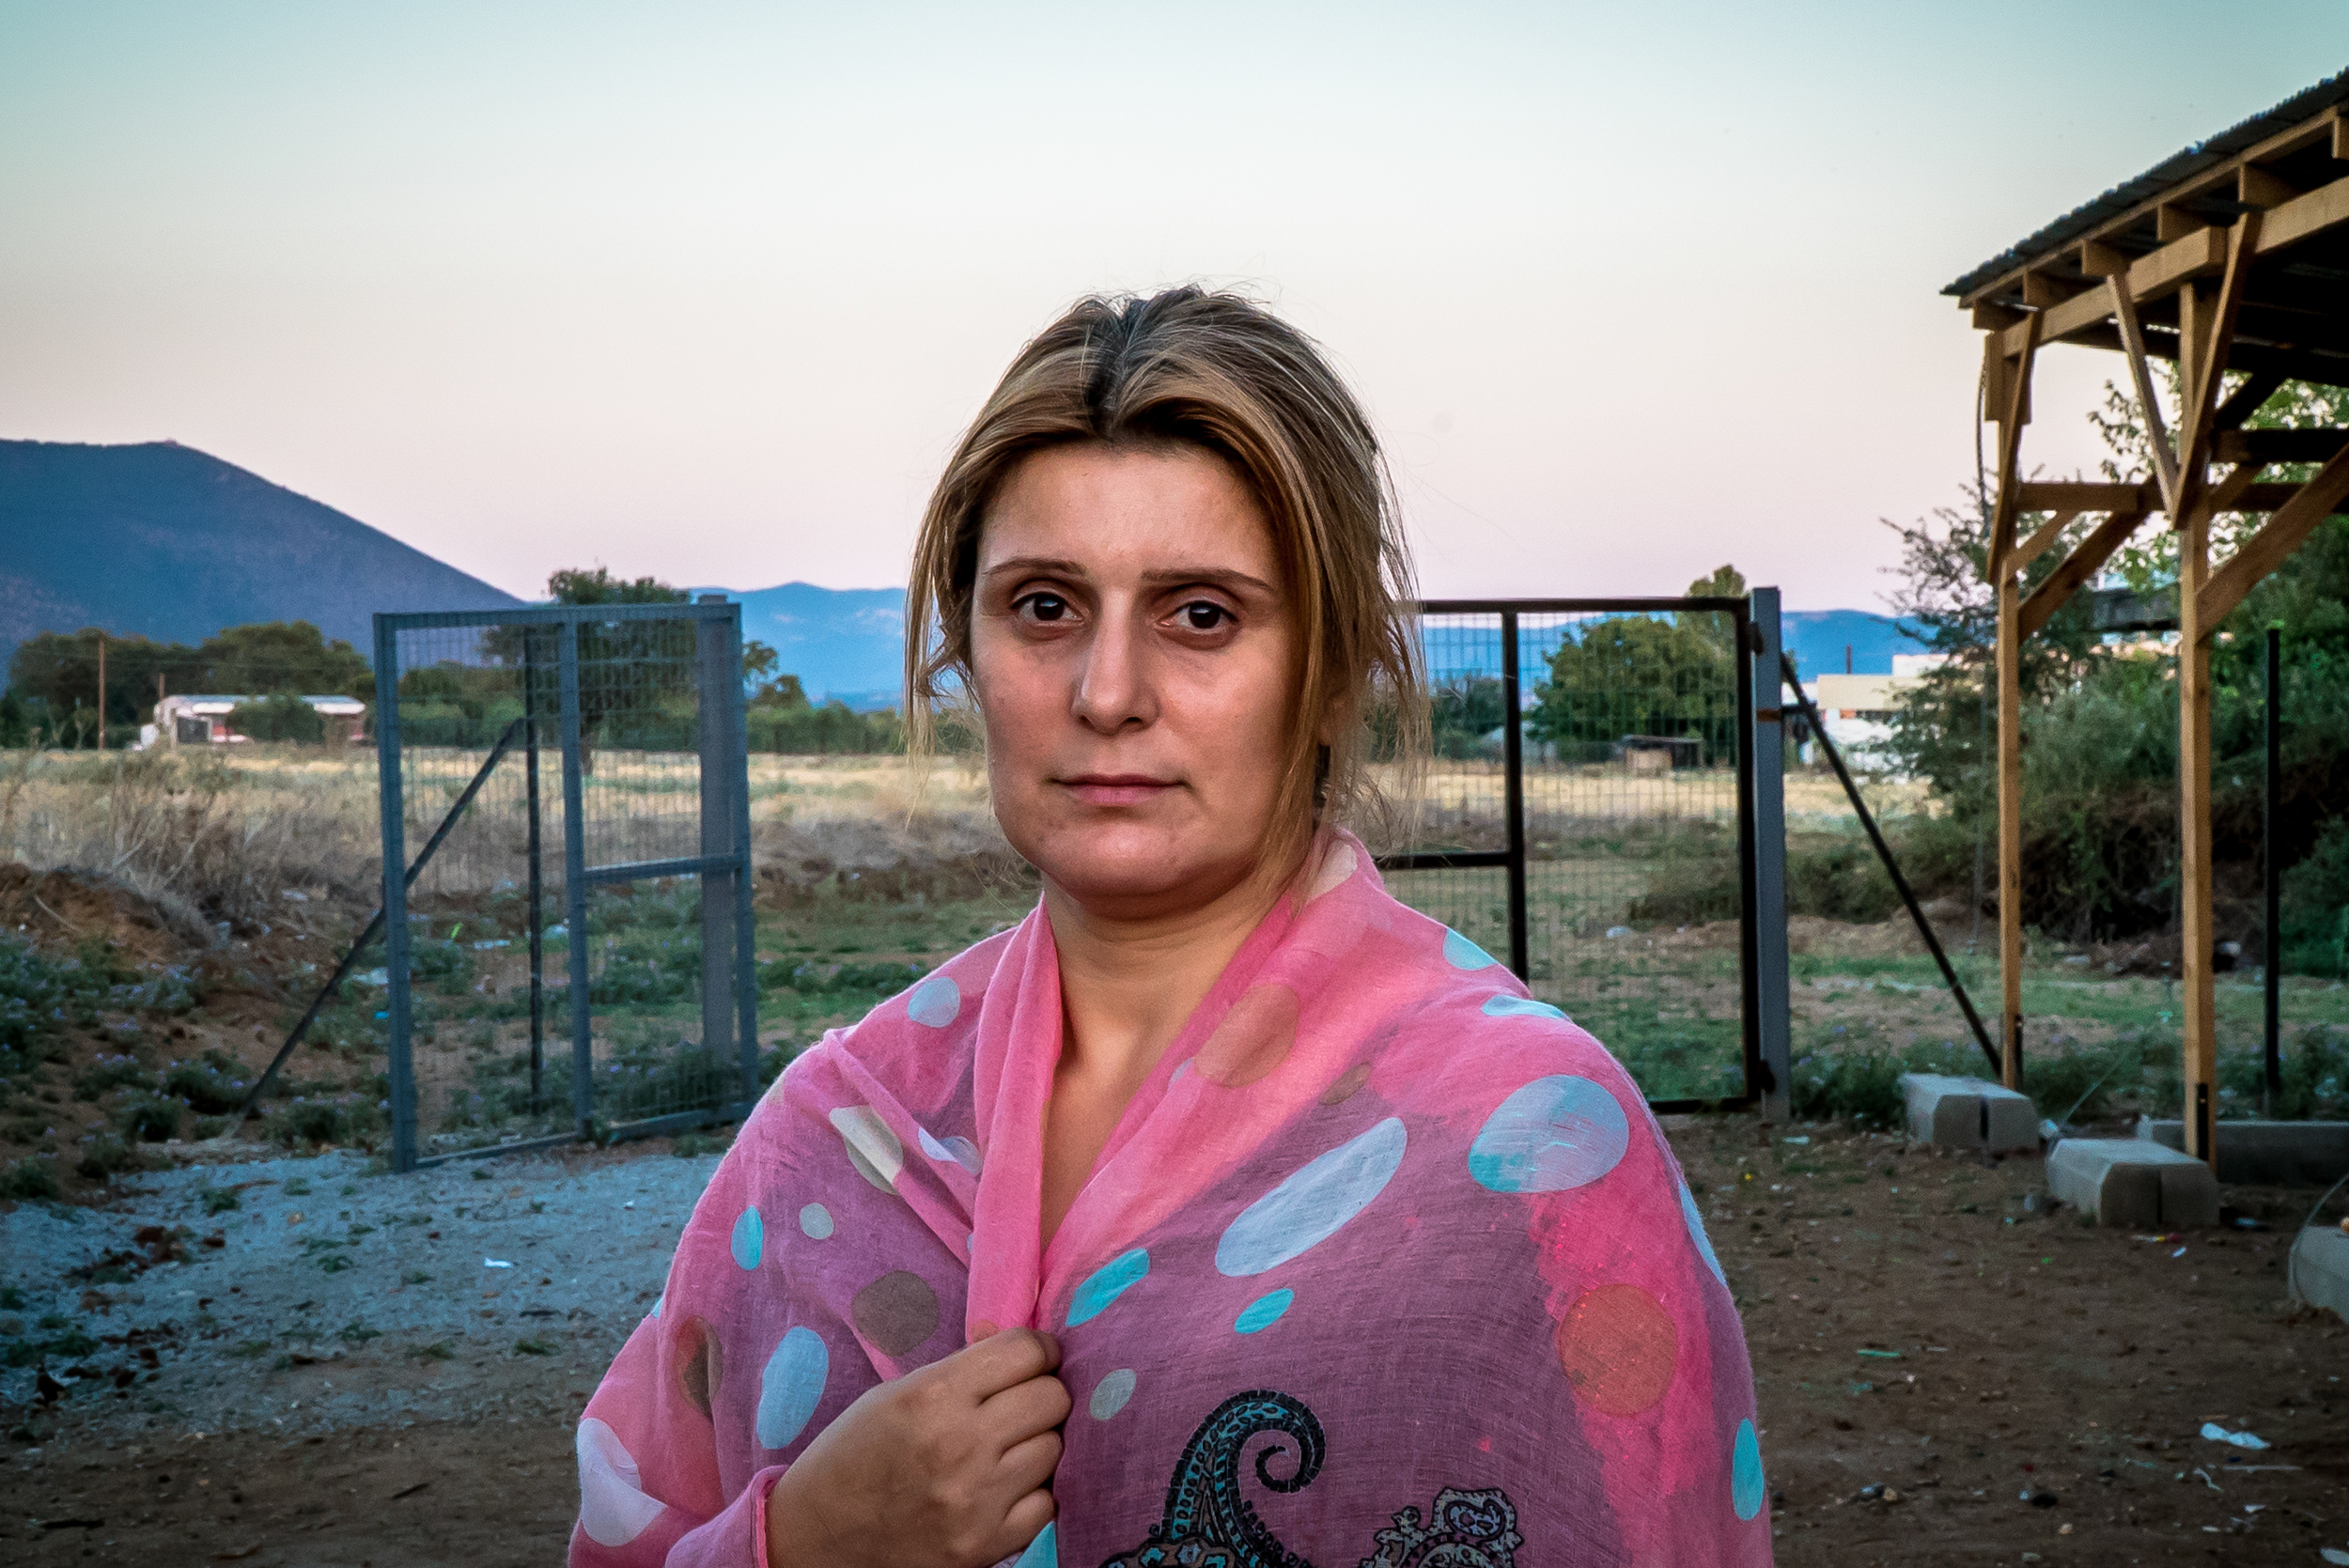 Photo taken 8/14/16. Hevin, a widowed single mom and former arts teacher in Vasilika Camp. She's been here for 2 months with her 3 children. With the current political policies in place, she can neither move forward across the border to get to Germany where she had hoped to work, or go back.